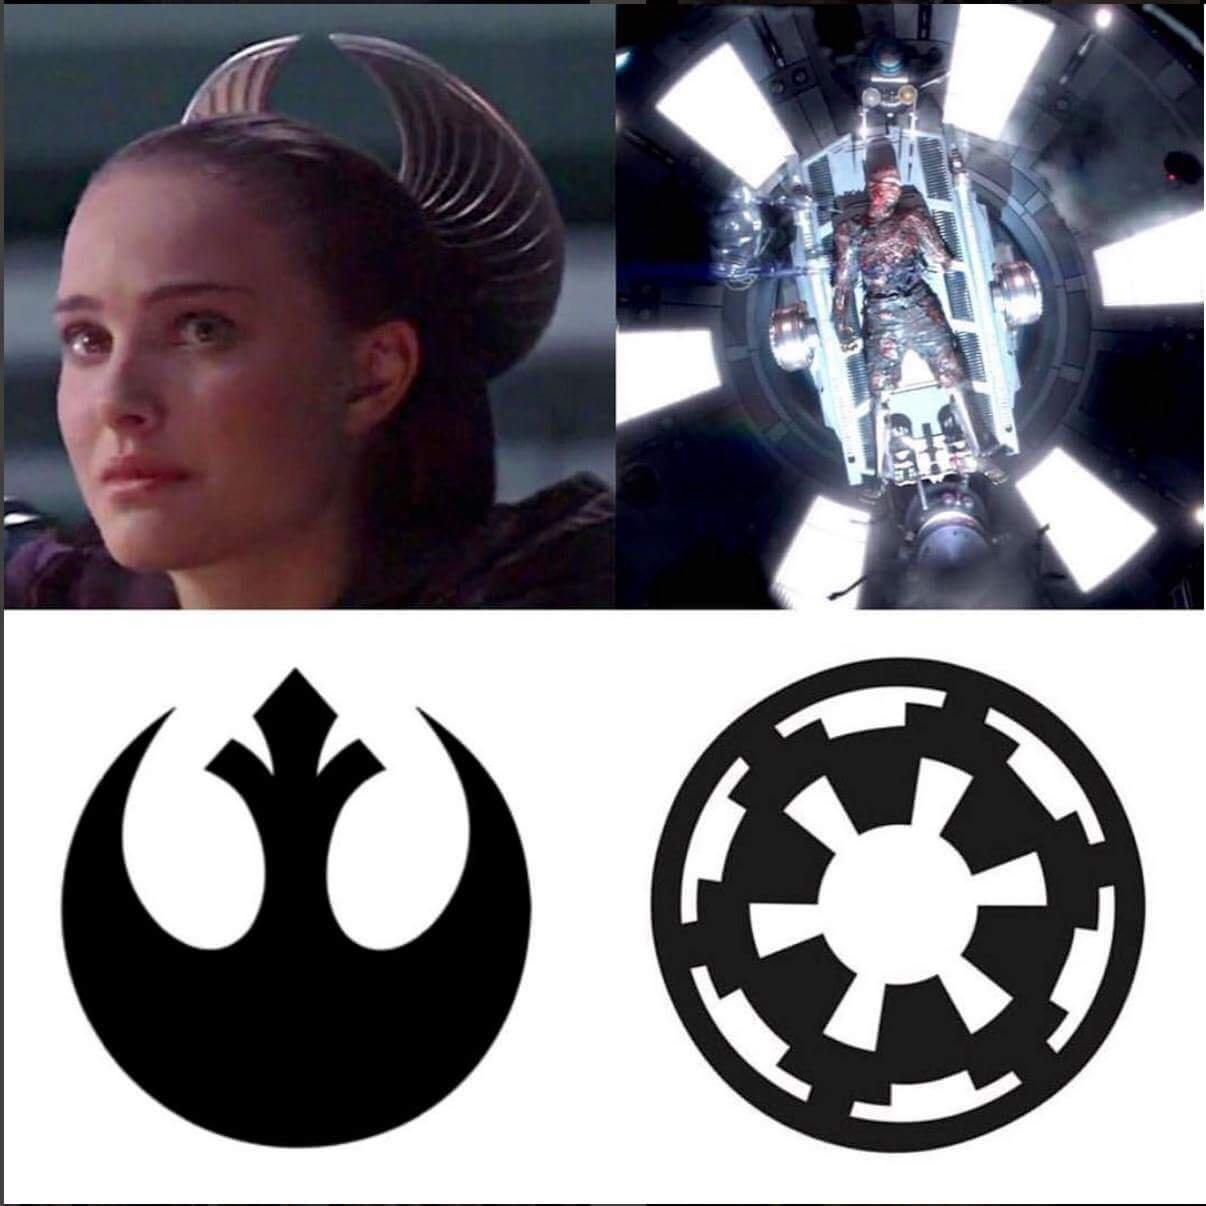 padme and vader represent